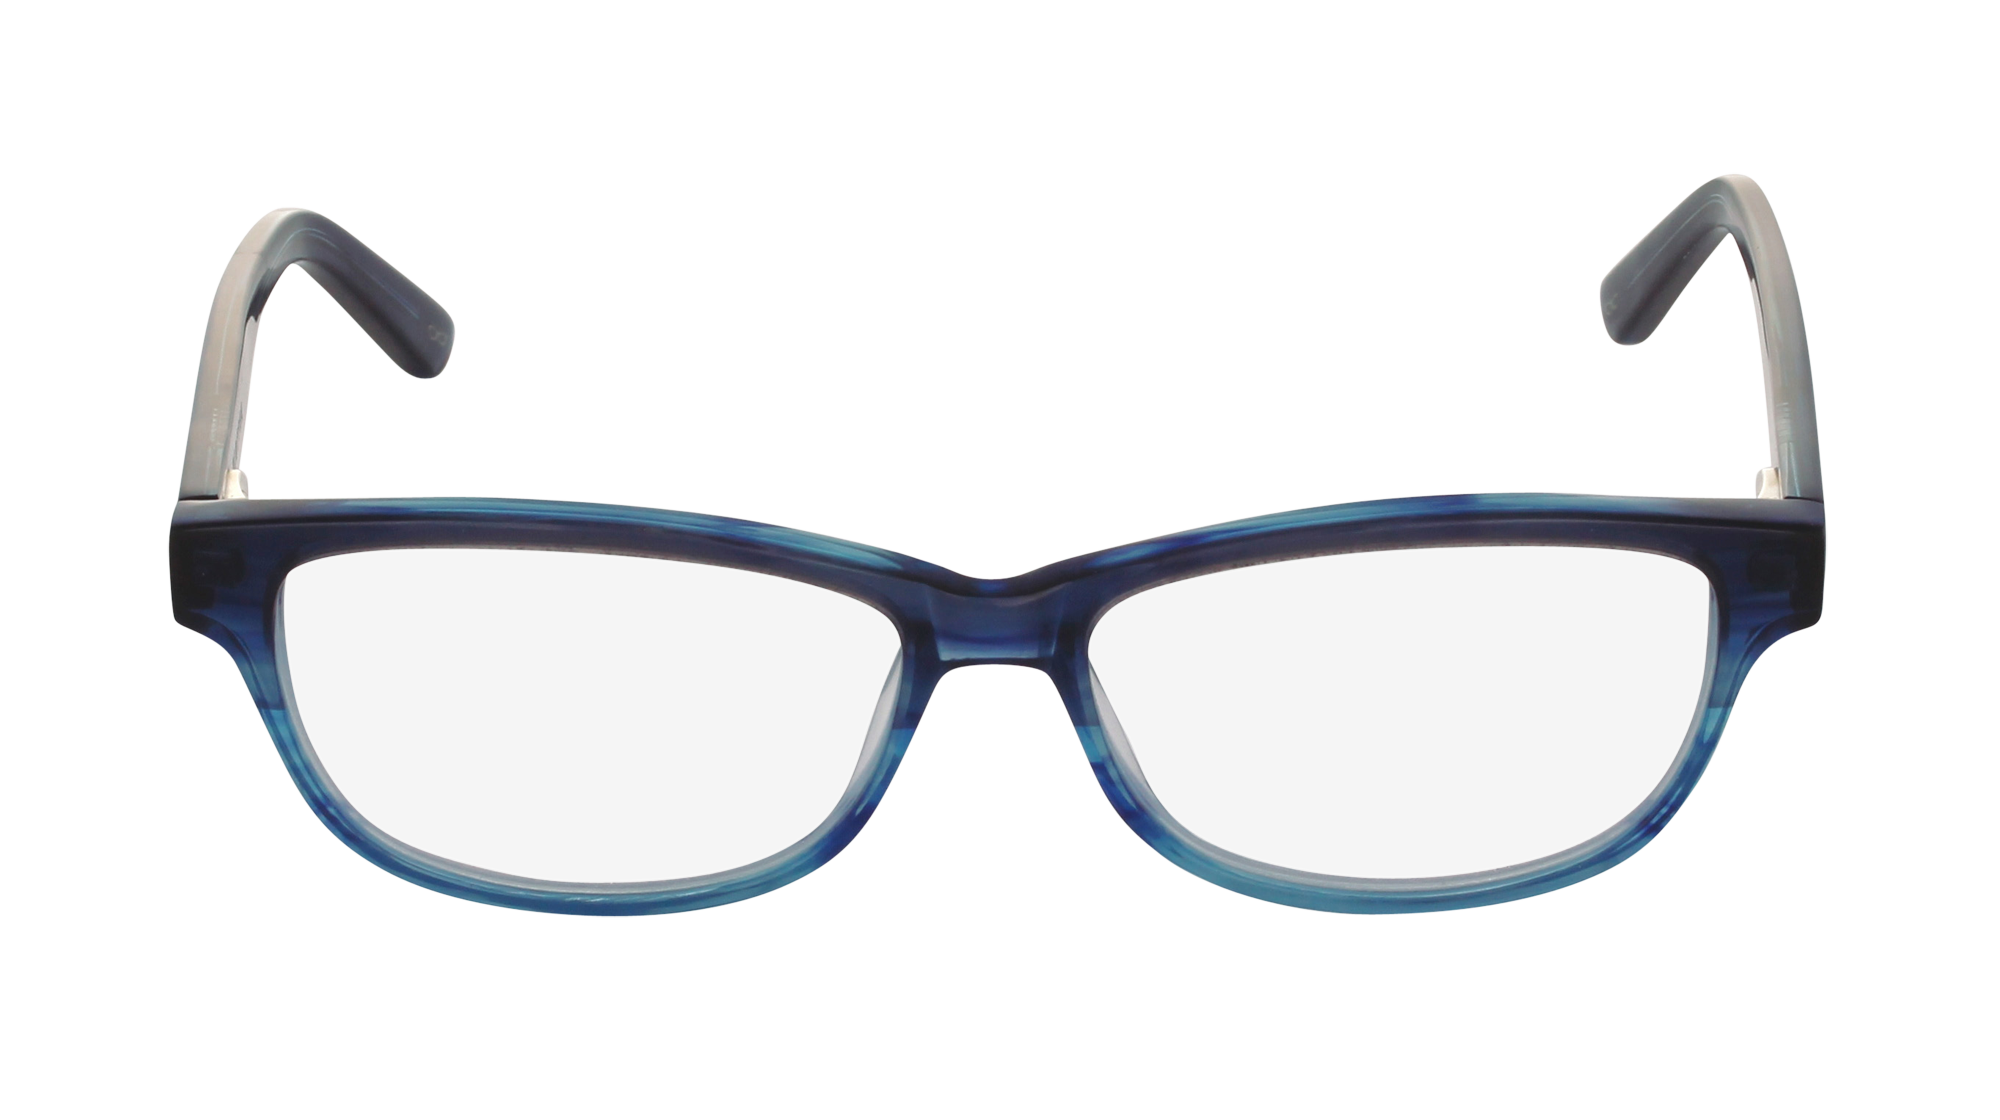 Sunglasses Png Transparent Viewing Gallery